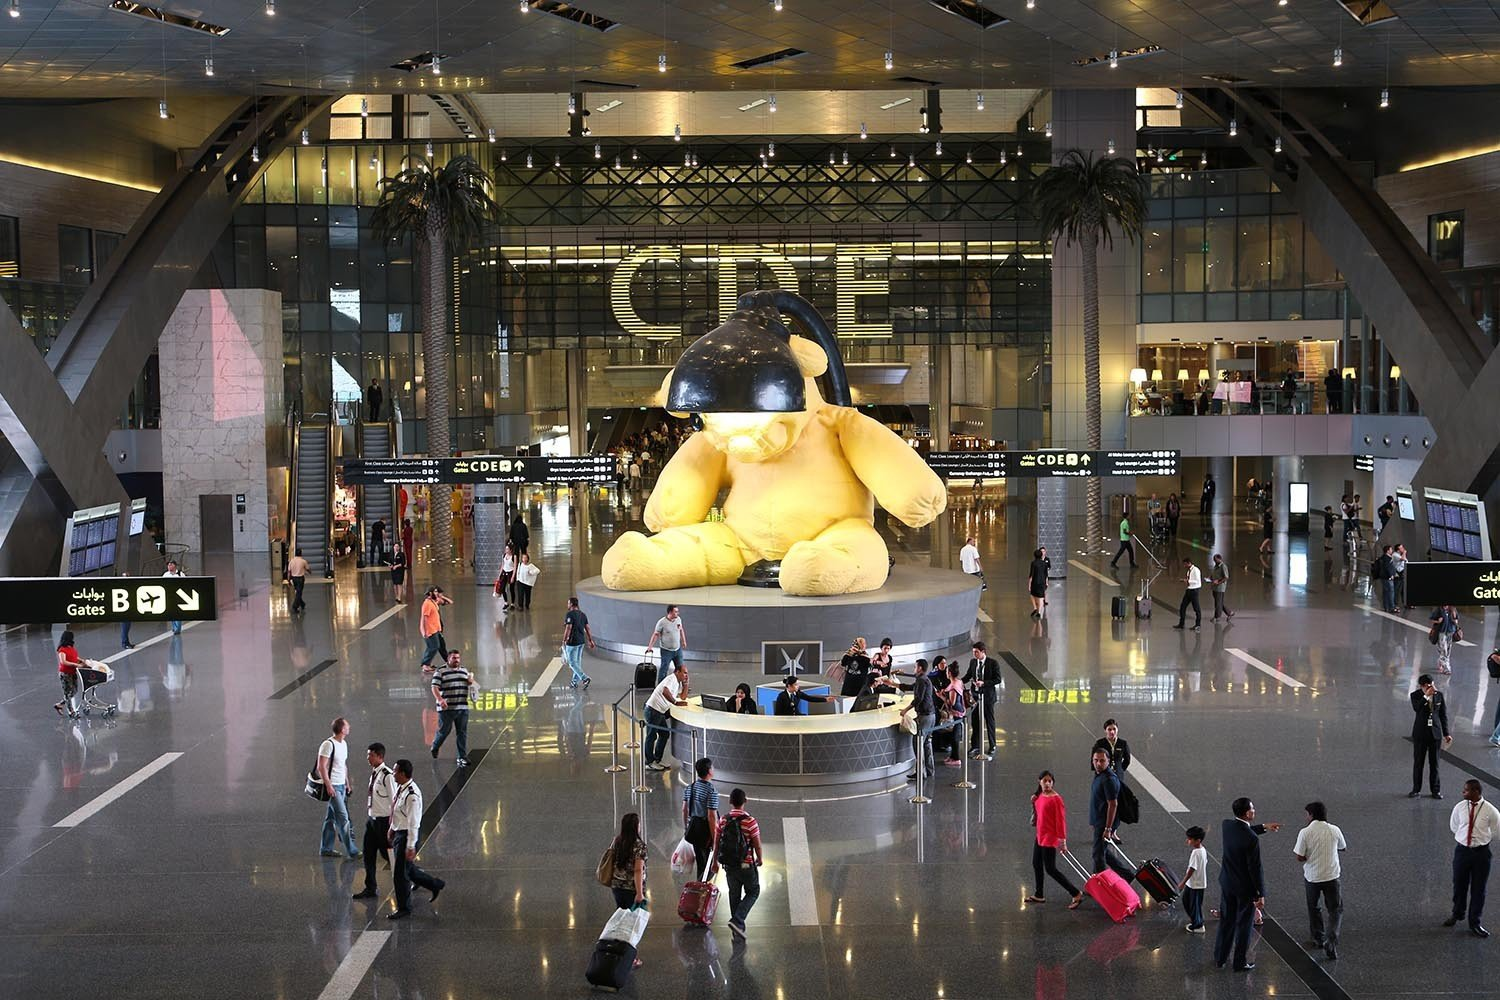 Offbeat indoor shopping mall retail building ceiling infrastructure airport shopping public transport tourist attraction airport terminal plaza several